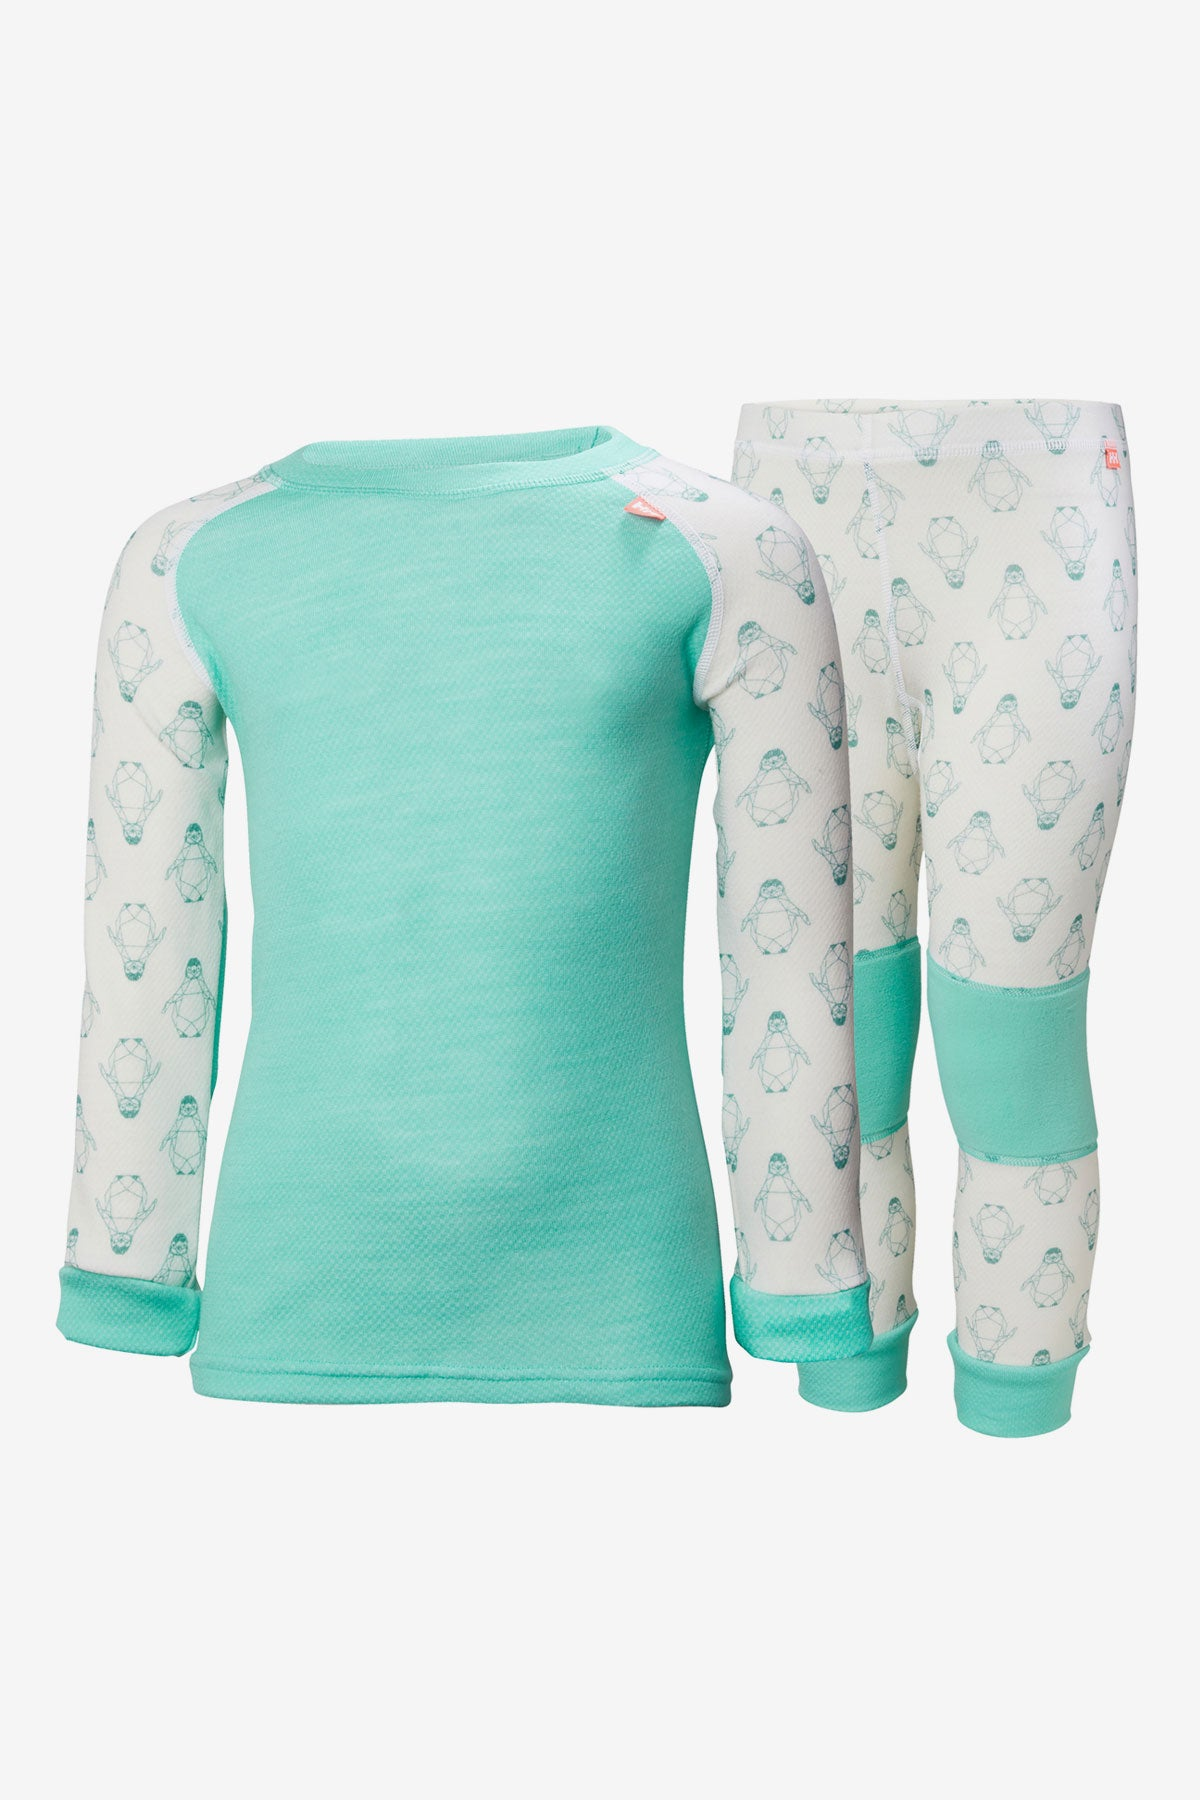 Helly Hansen Lifa Merino Girls Baselayer Set - Pool Blue